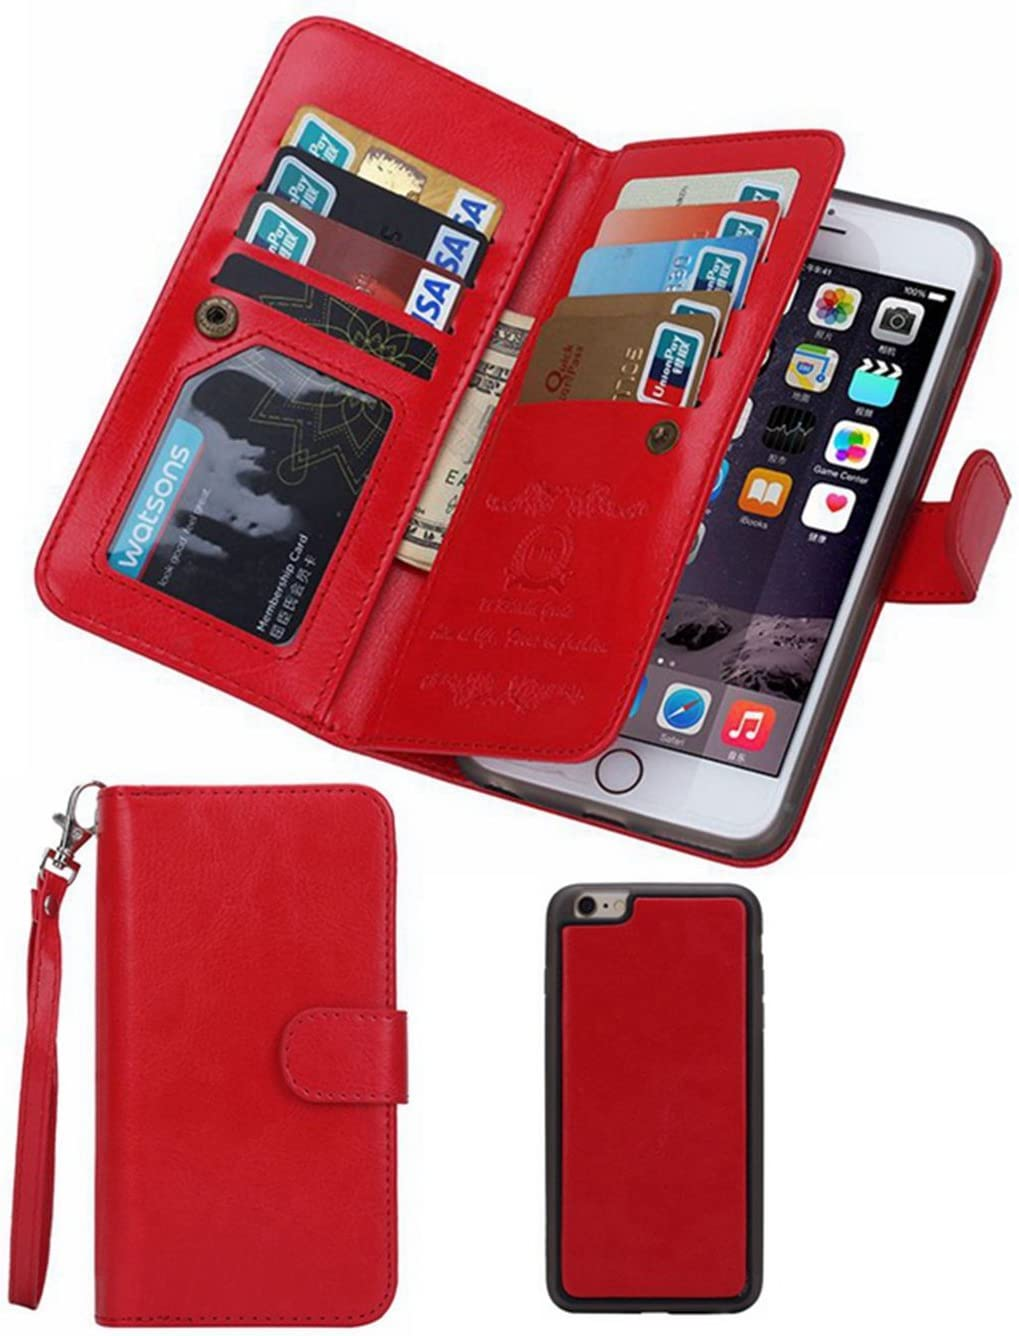 HYSJY iPhone 5S/SE Wallet Case, Magnetic Detachable PU Leather Wallet Purse for Women Men with Strap, Credit Card Slots, Card Holer,Flip Slim Cover Case Fit iPhone 5/5S/SE (Card-Red)